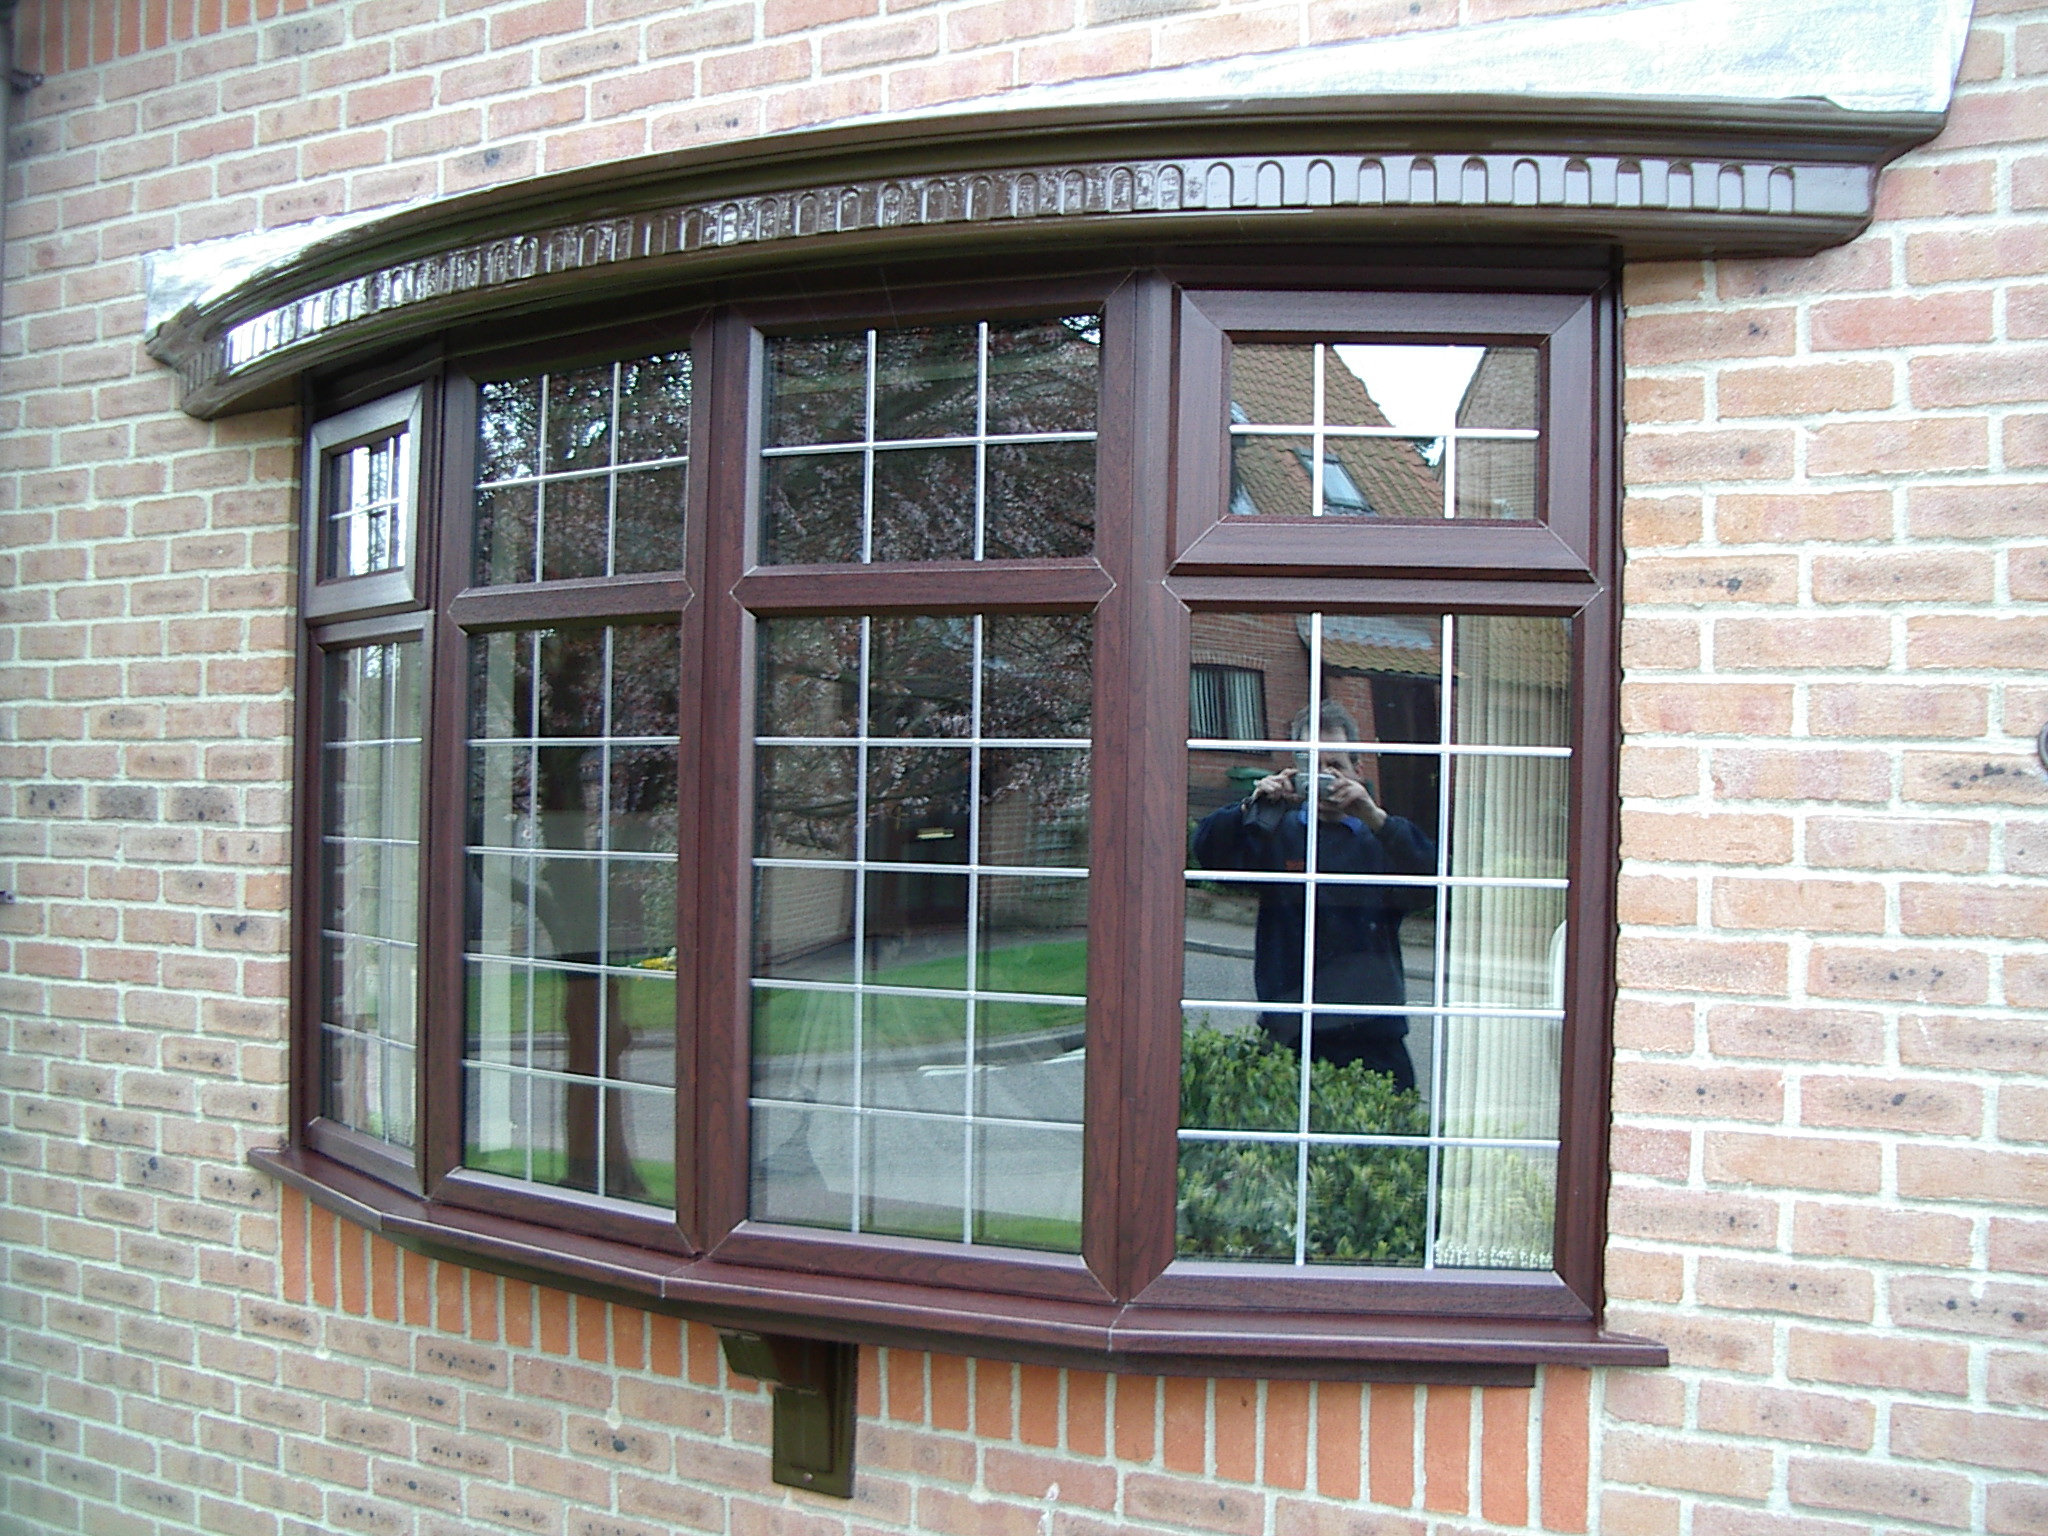 Window design home window designs home windows design for Picture window replacement ideas